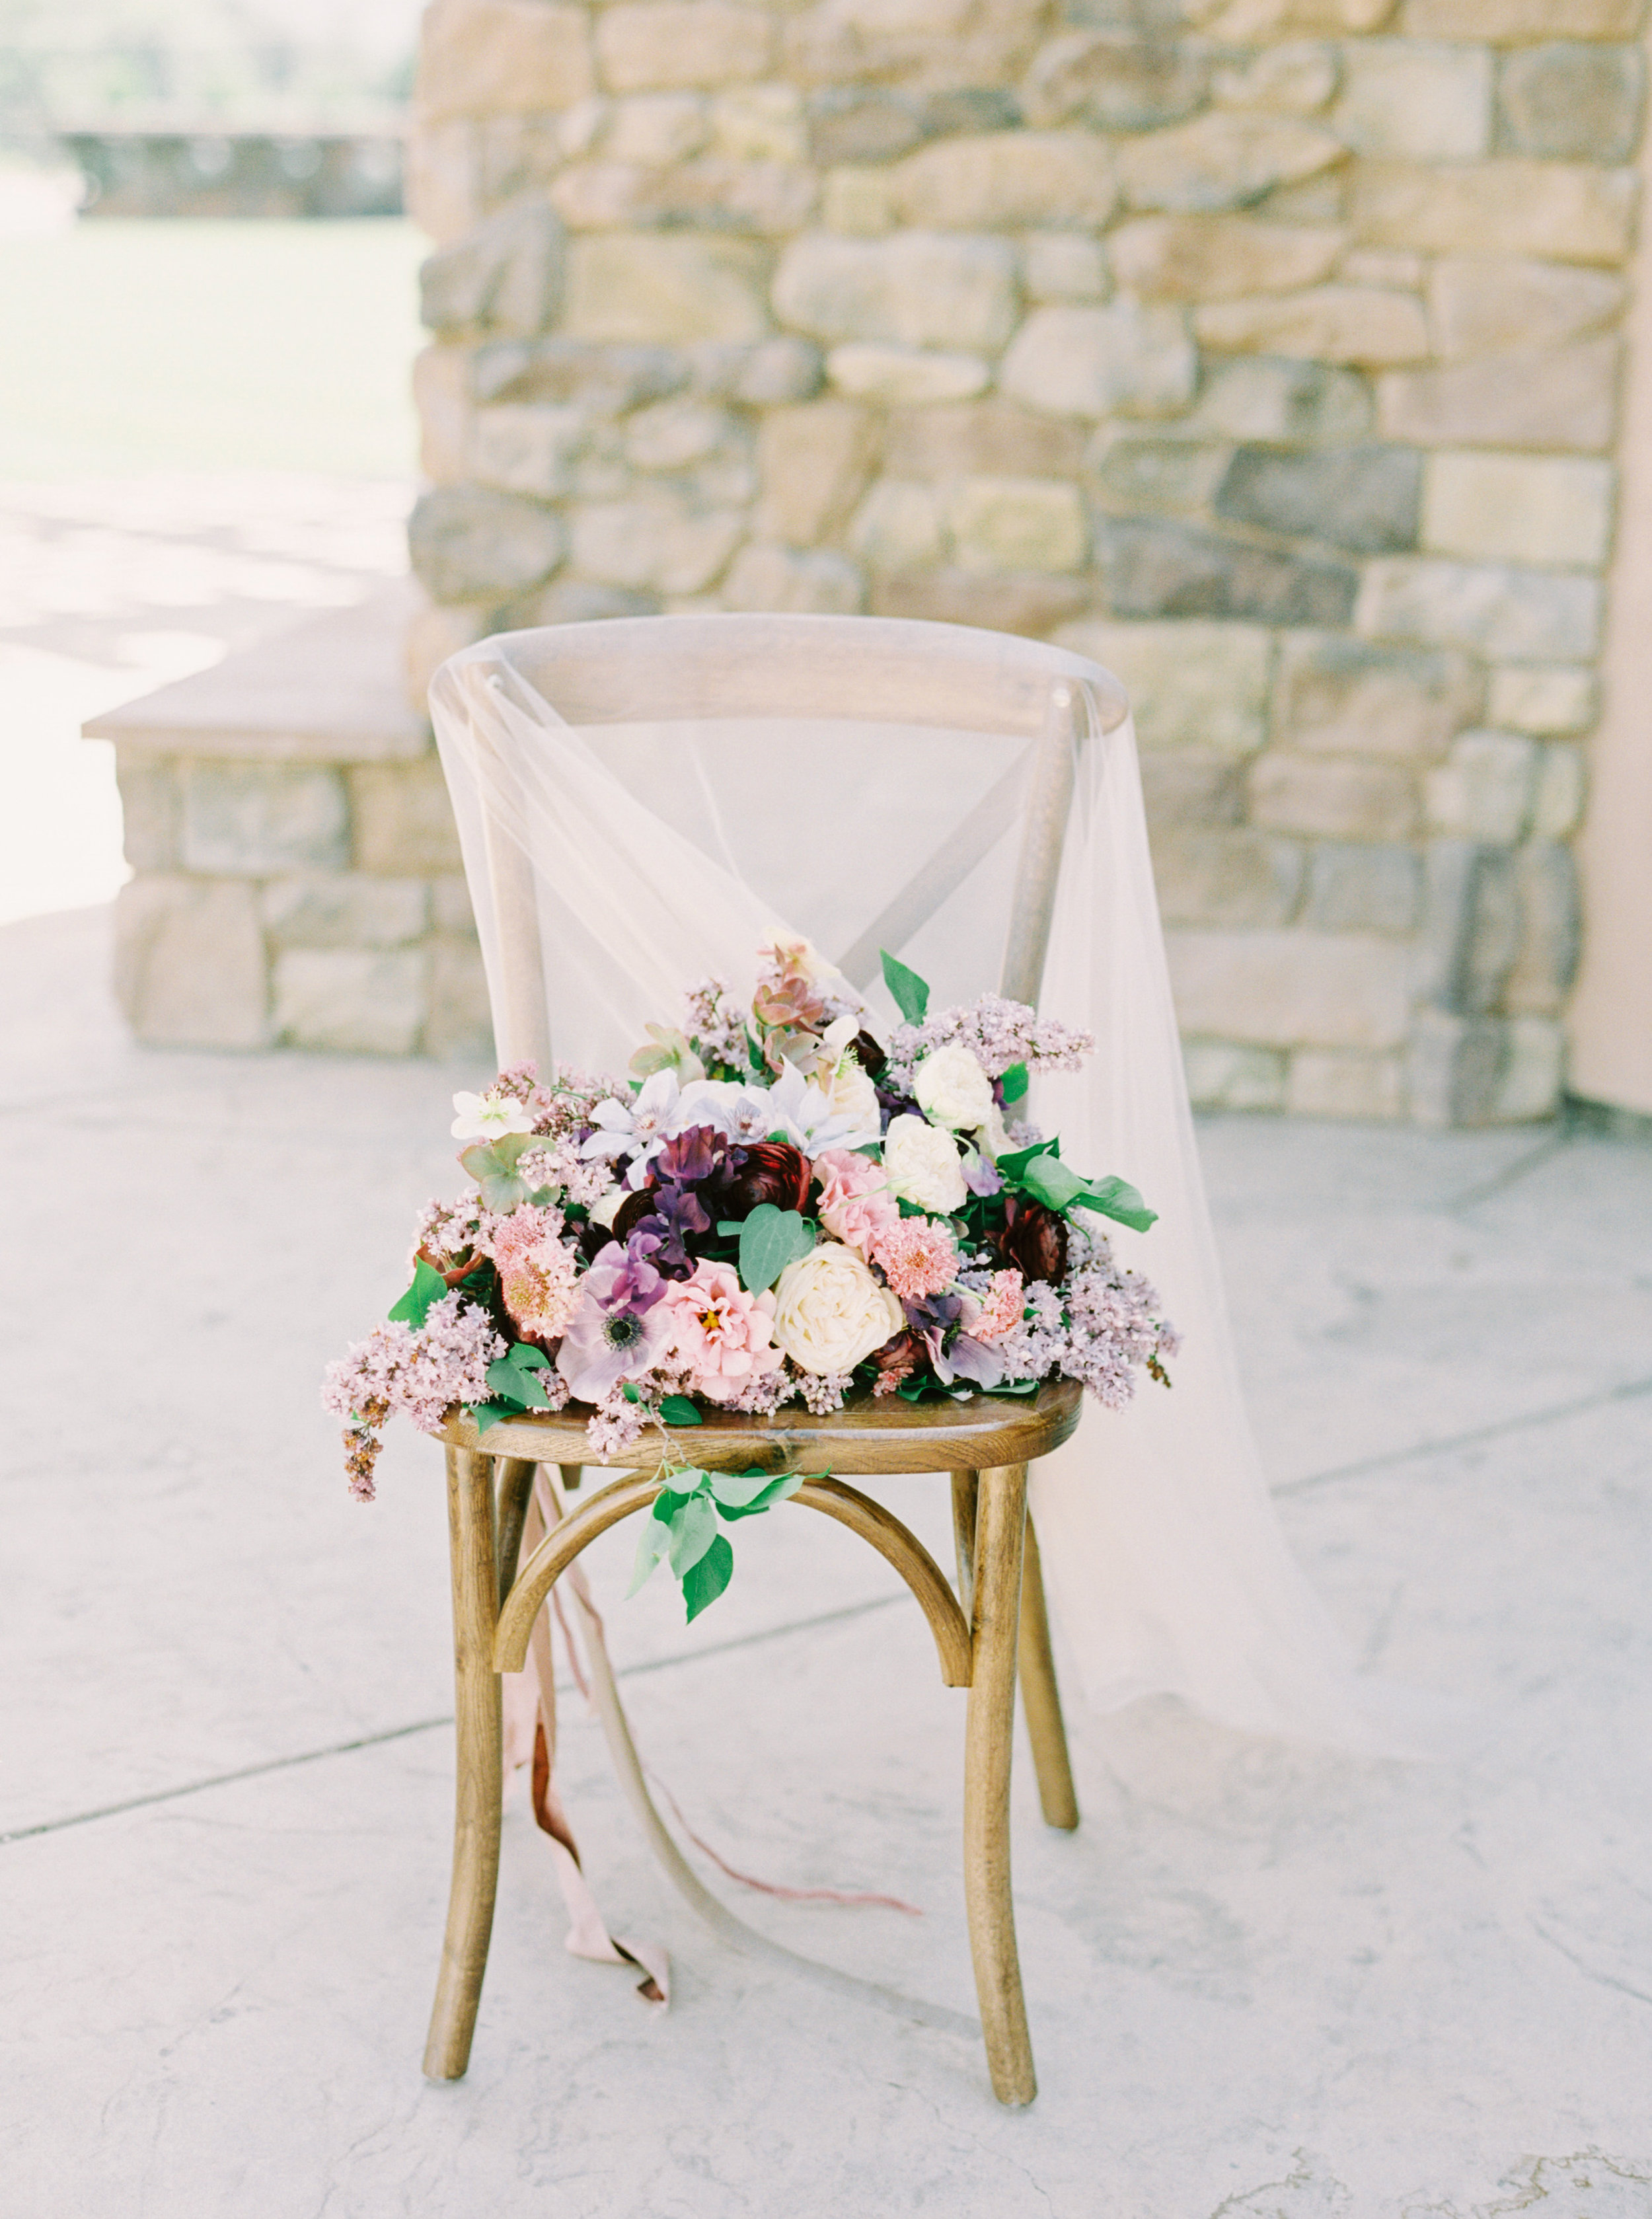 This-Love-of-Yours-Kirigin-Cellars-Flower-Arch-Styled-Shoot-043.jpg